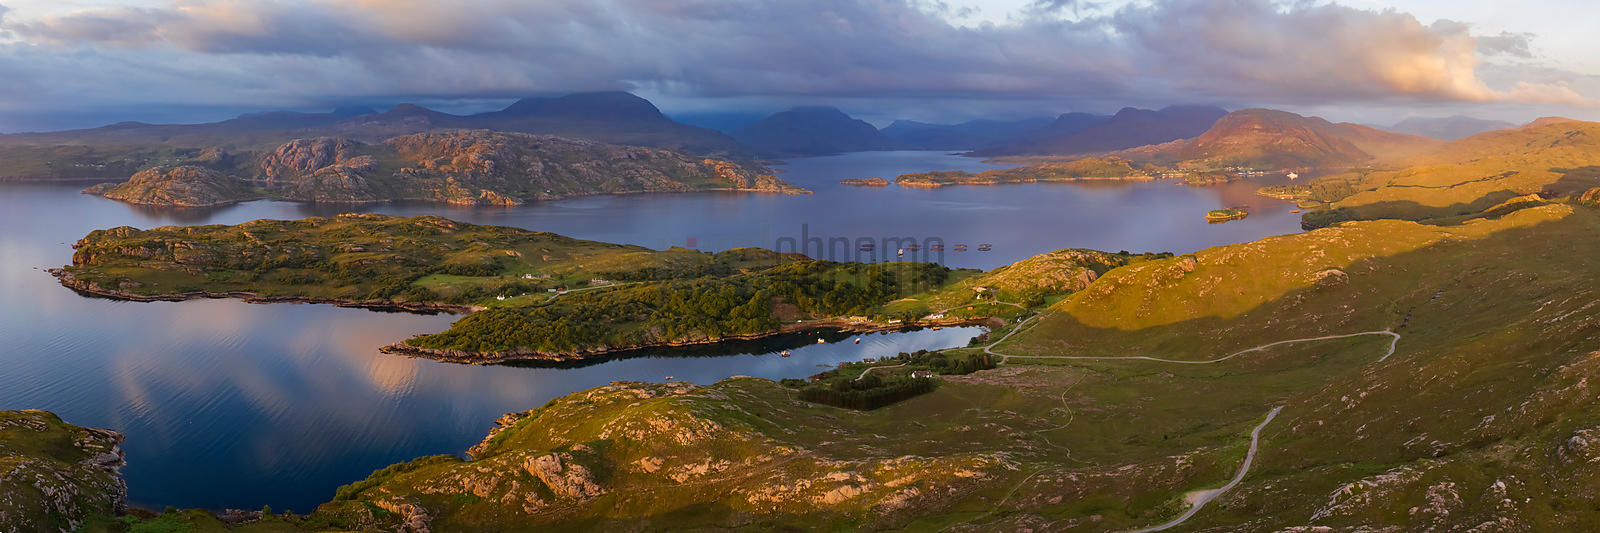 Aerial View of the Landscape around Loch Torridon, Loch Shieldaig and Upper Loch Torridon